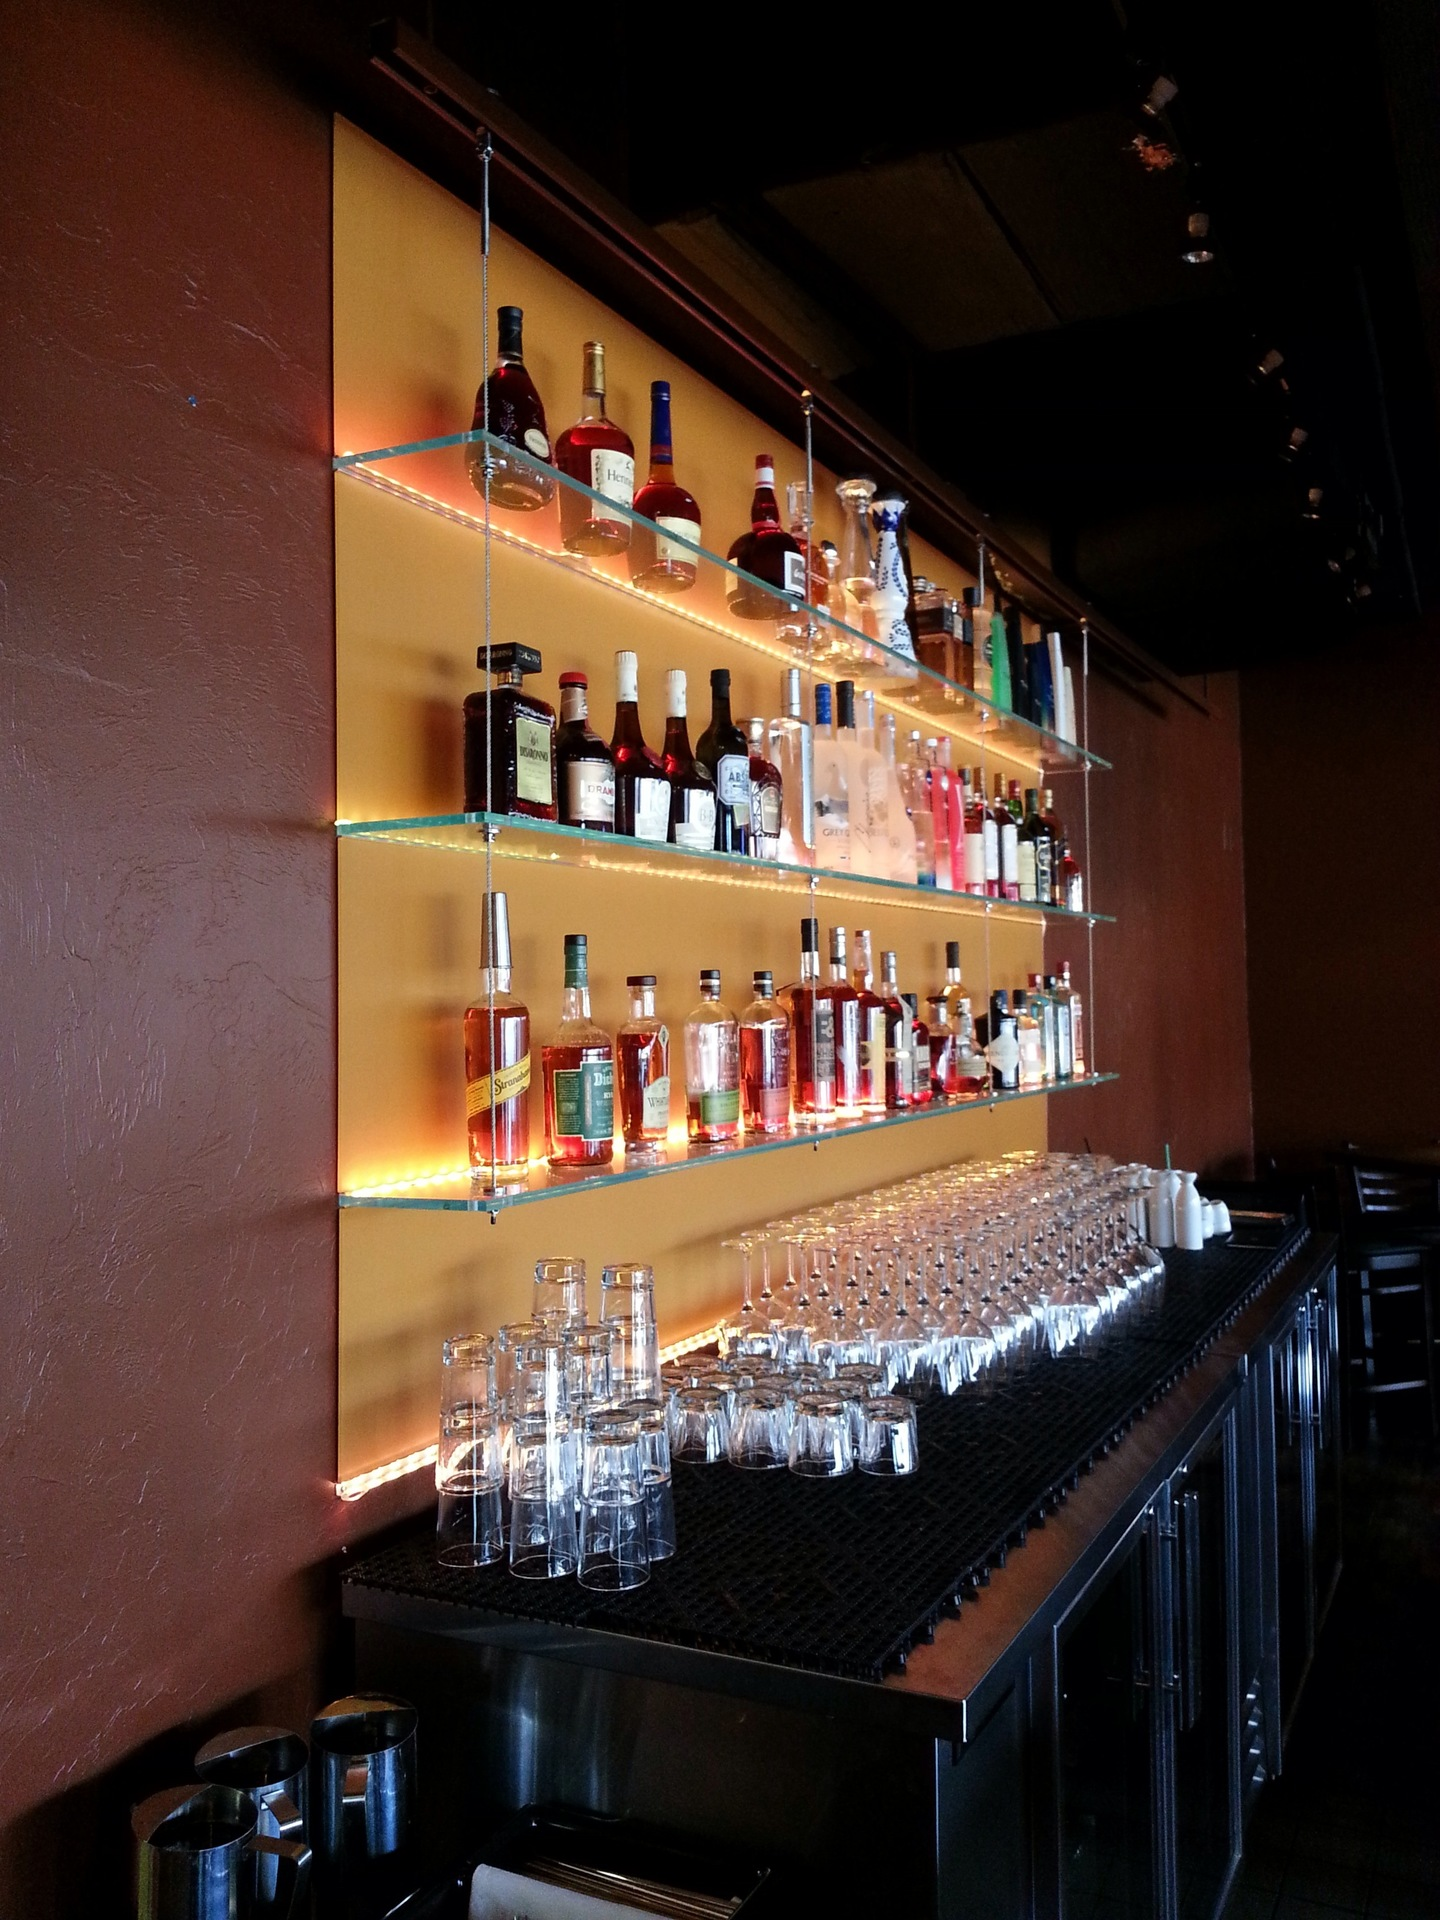 Denver Glass Interiors measured, cut, and installed these custom shelves for this bar.